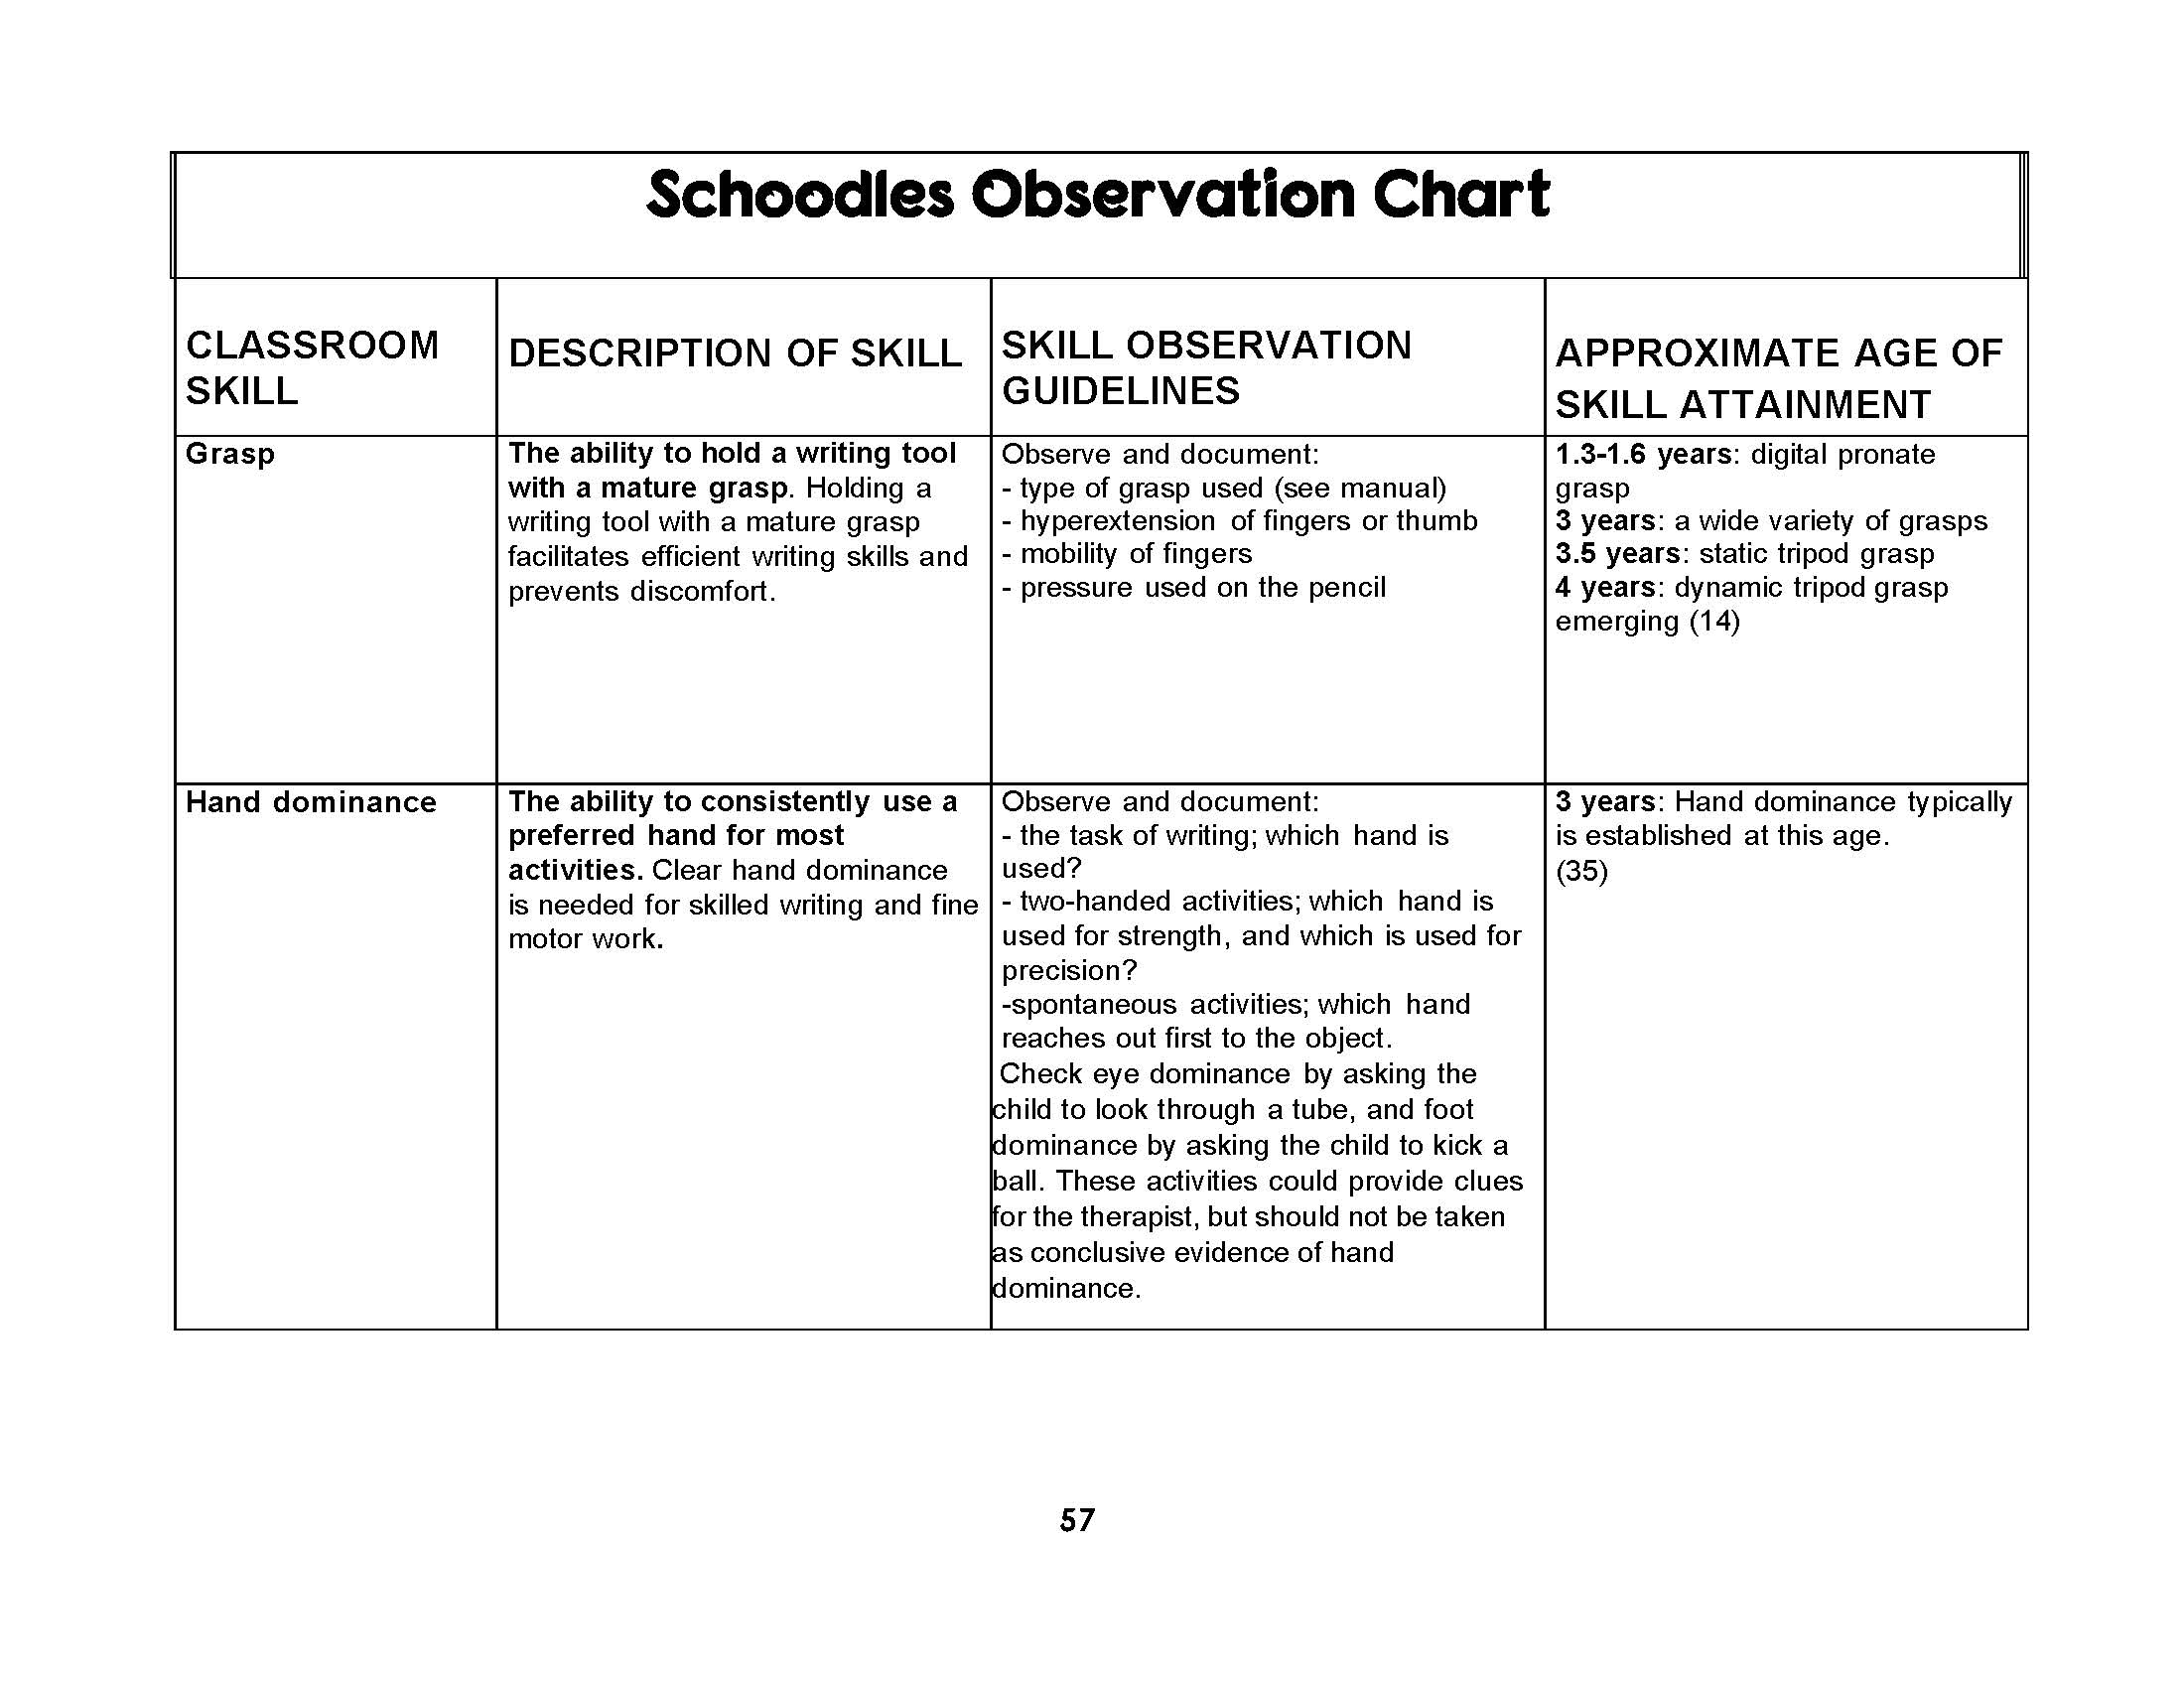 4th Edition Assessment Guide-Schoodles 36619 _Page_58